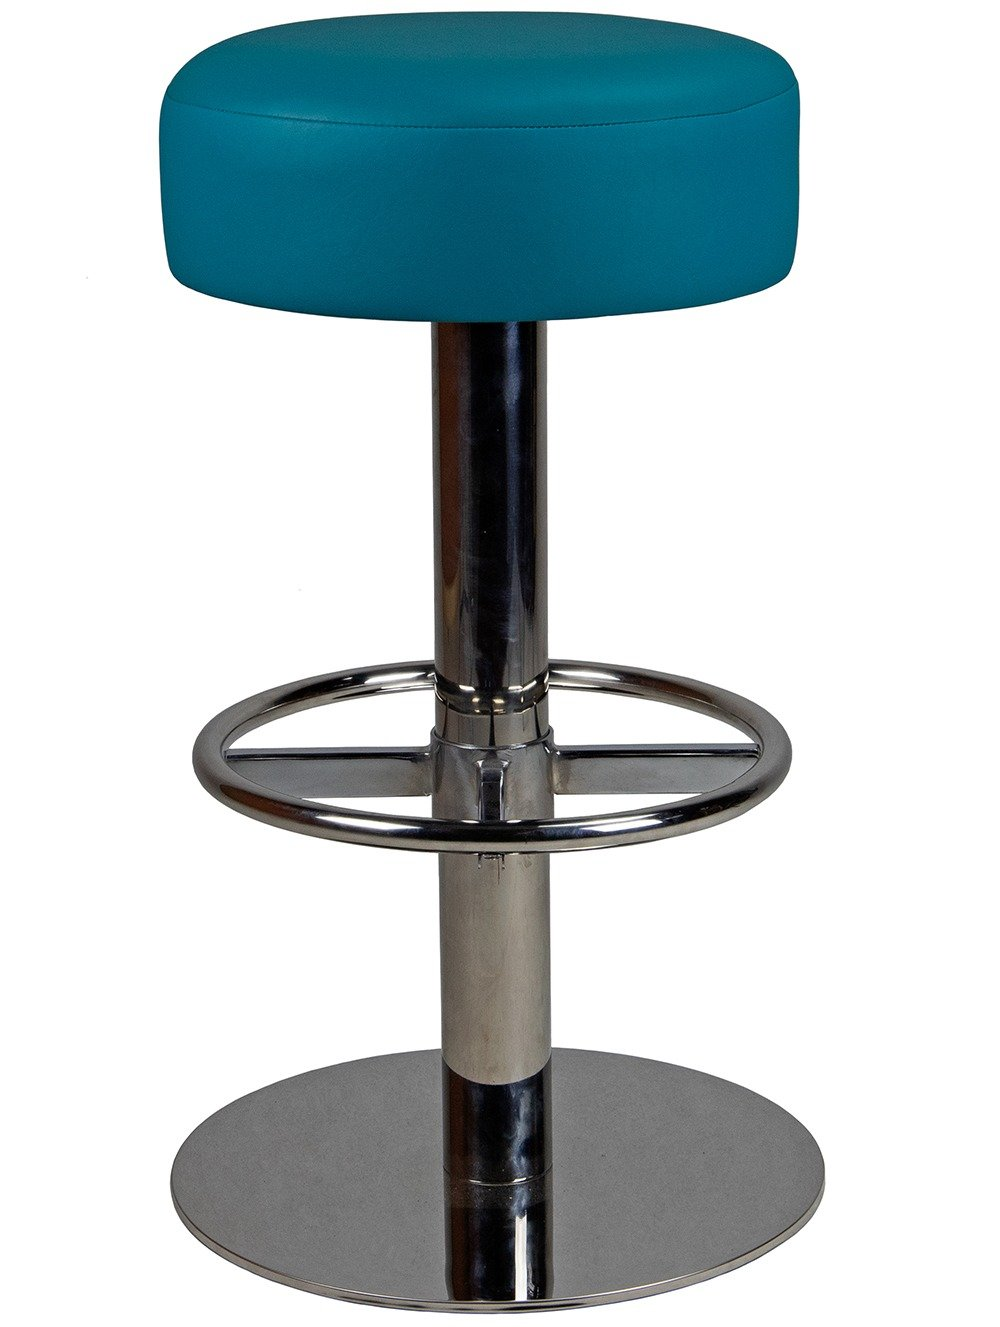 Carlick - Phobos High Stool